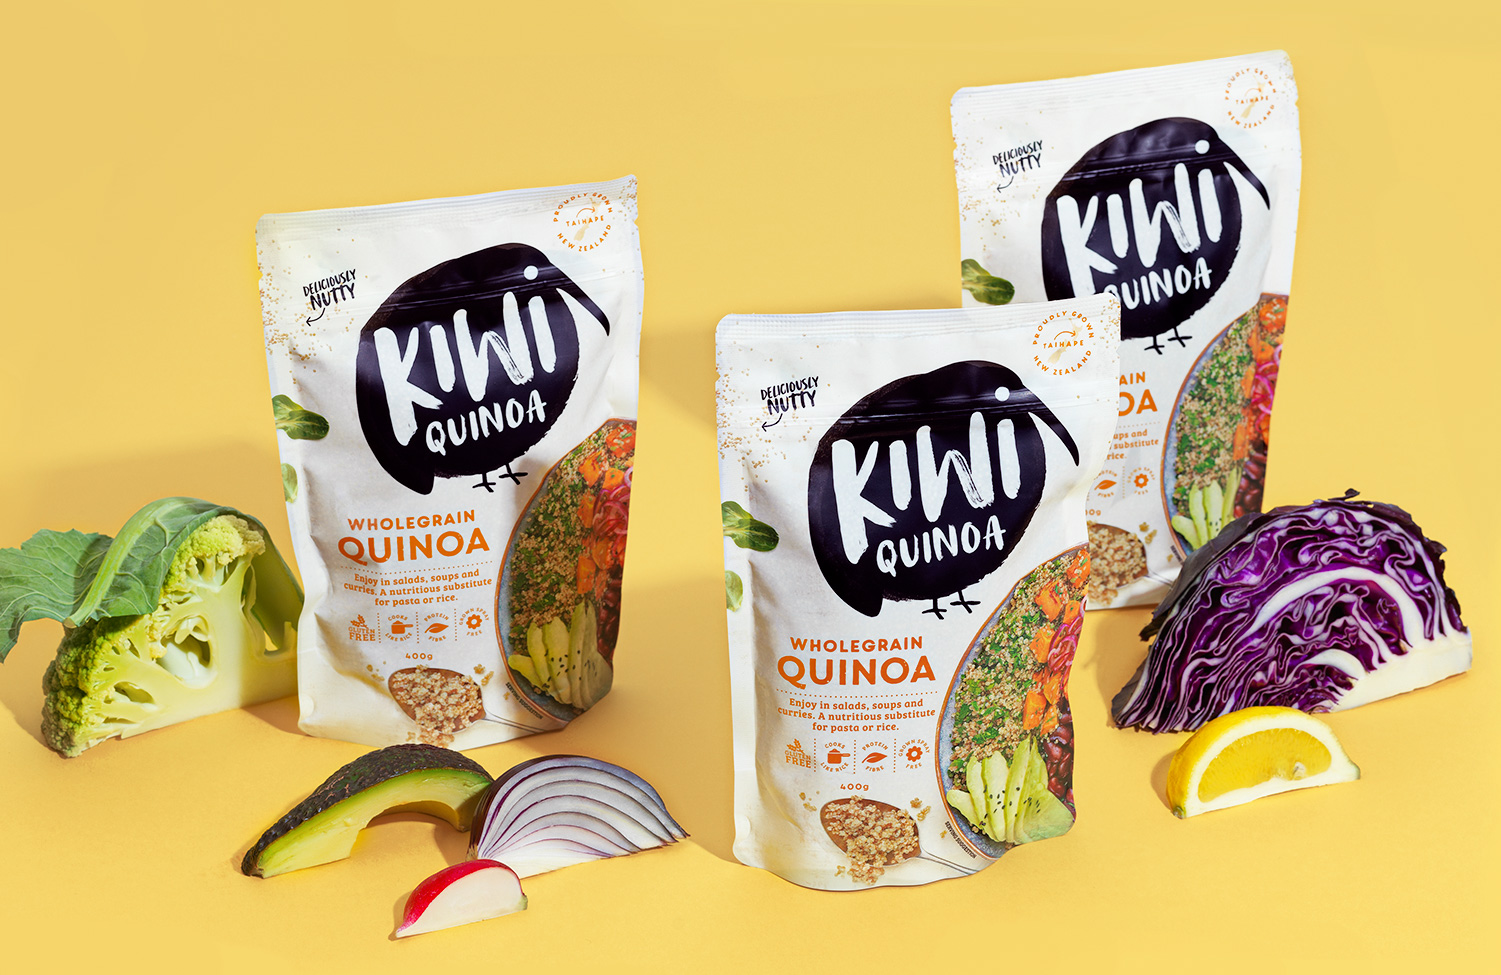 Unified Brands New Brand and Packaging Design Helps Bring Quinoa to Kiwis